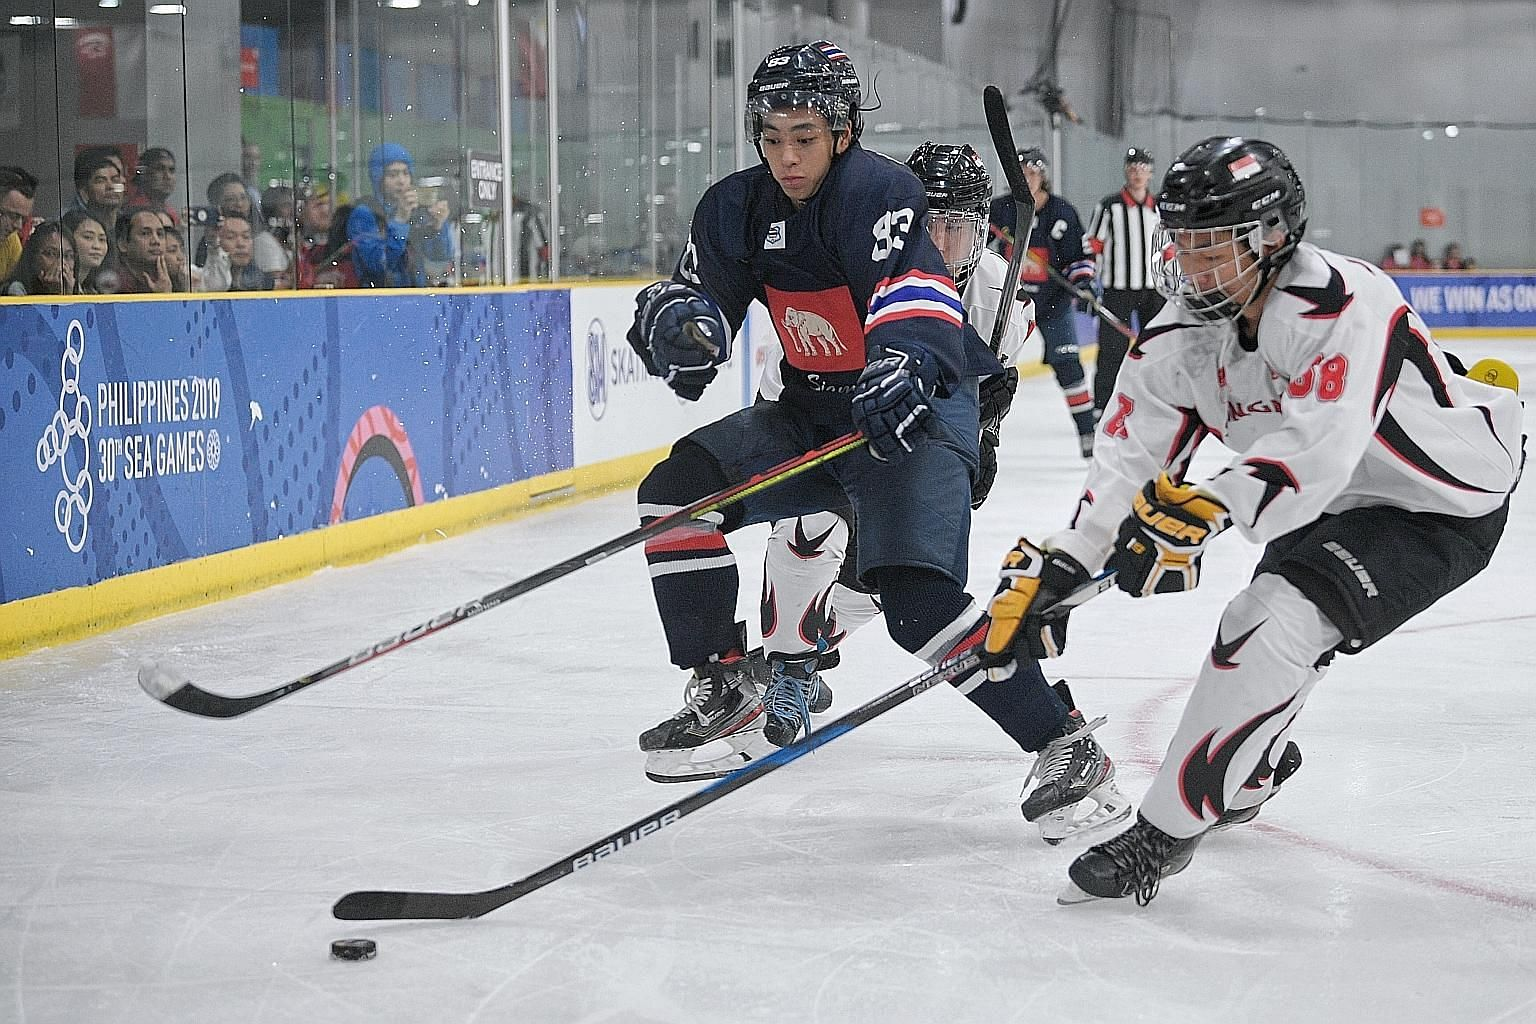 Singapore's Ryan Tan and Thailand's Masato Kitayama tussling for the puck in the SEA Games ice hockey final. Thailand had 55 shots on goal in the 8-0 win.